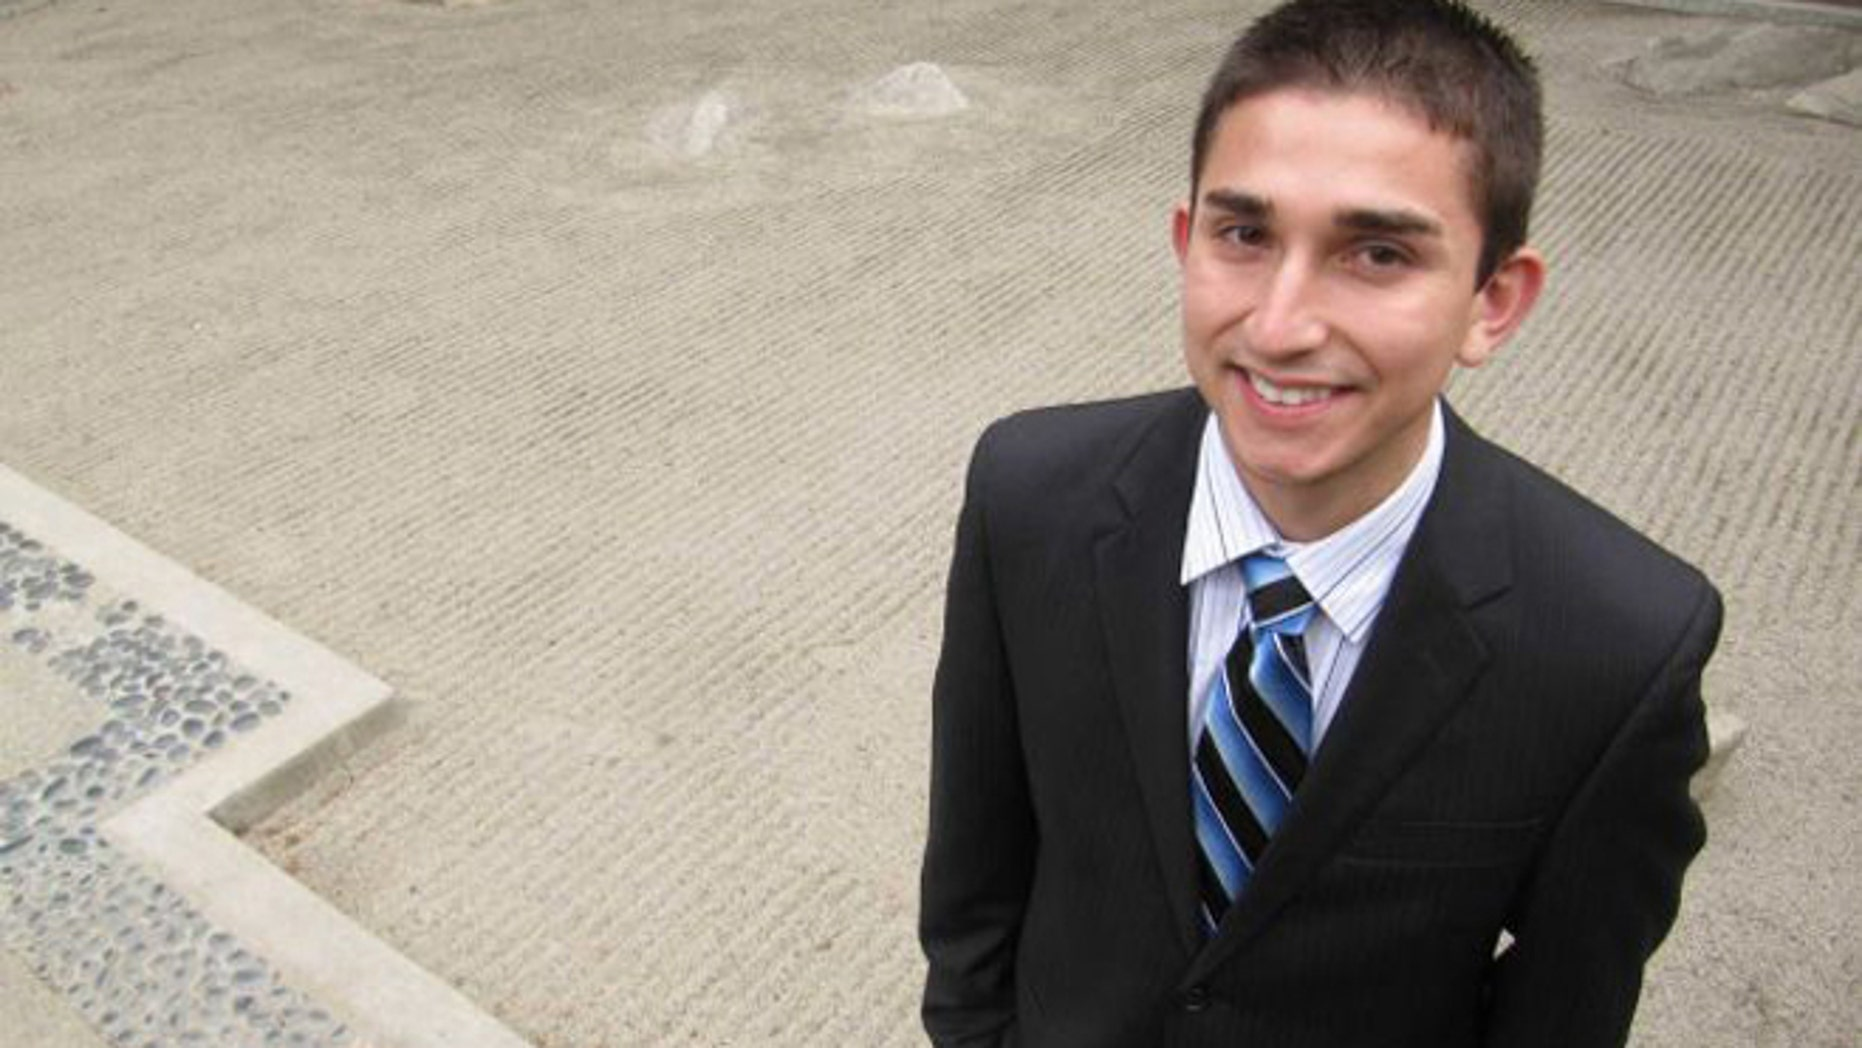 In this April 6, 2012 photo, Pablo Gonzalez poses for a photograph at Central Washington University in Ellensburg, Wash. (Photo: Shannon Dininny / AP)